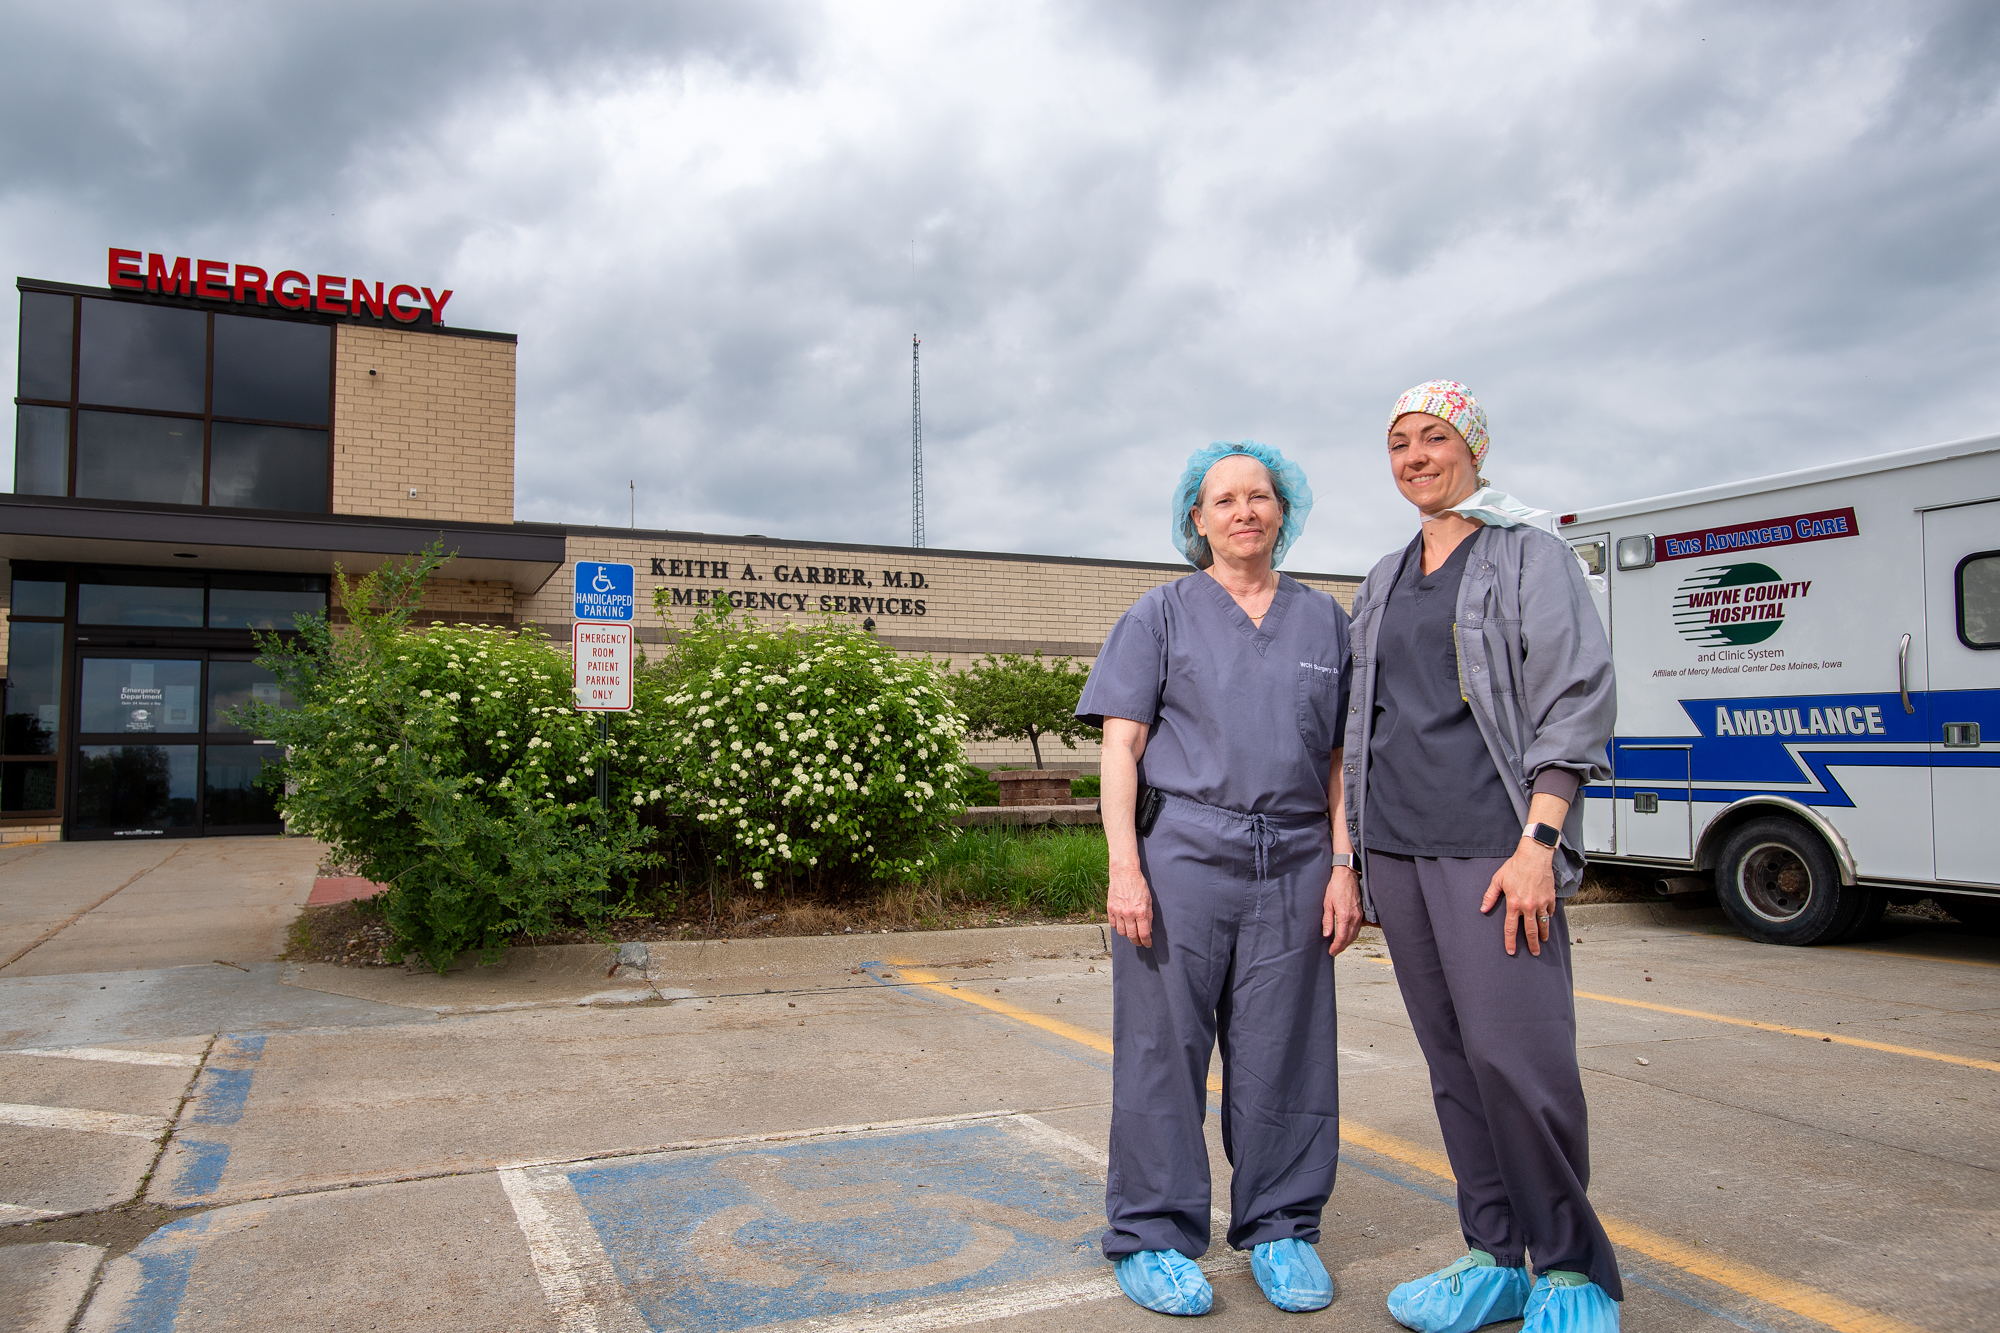 Valerie and Amanda McKinley standing outside the hospital in Corydon, Iowa